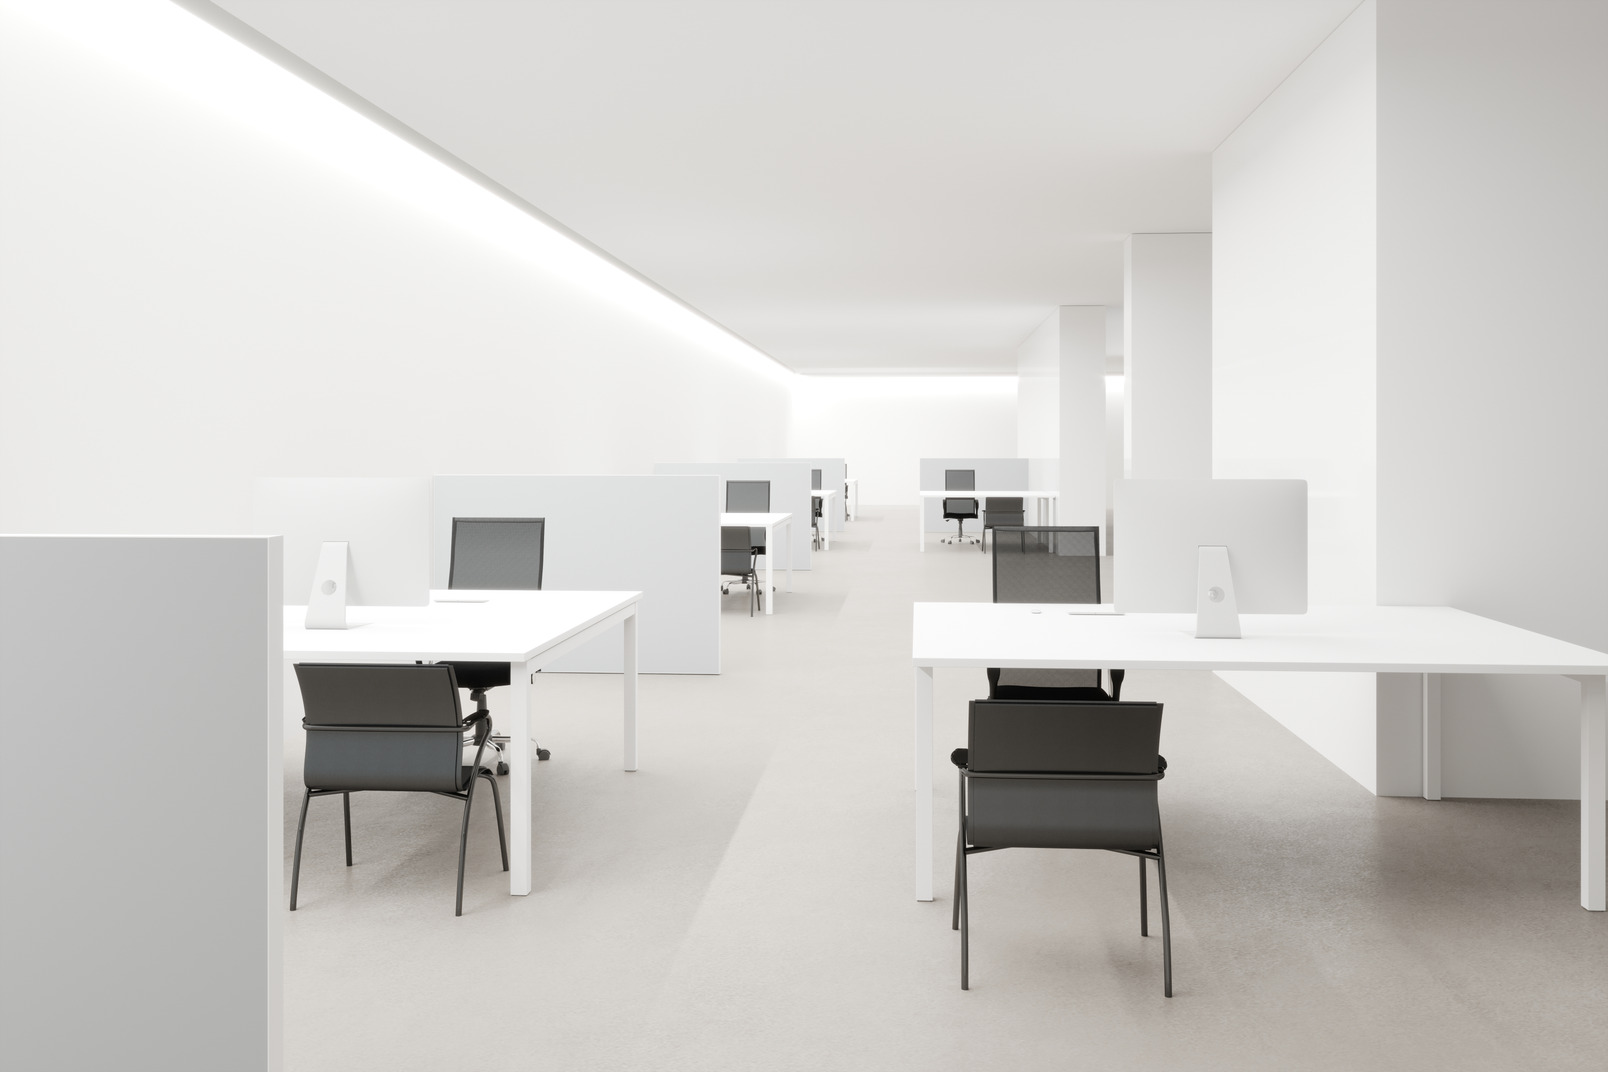 A clean white room for office workers, with cold lighting and computer desks in a row